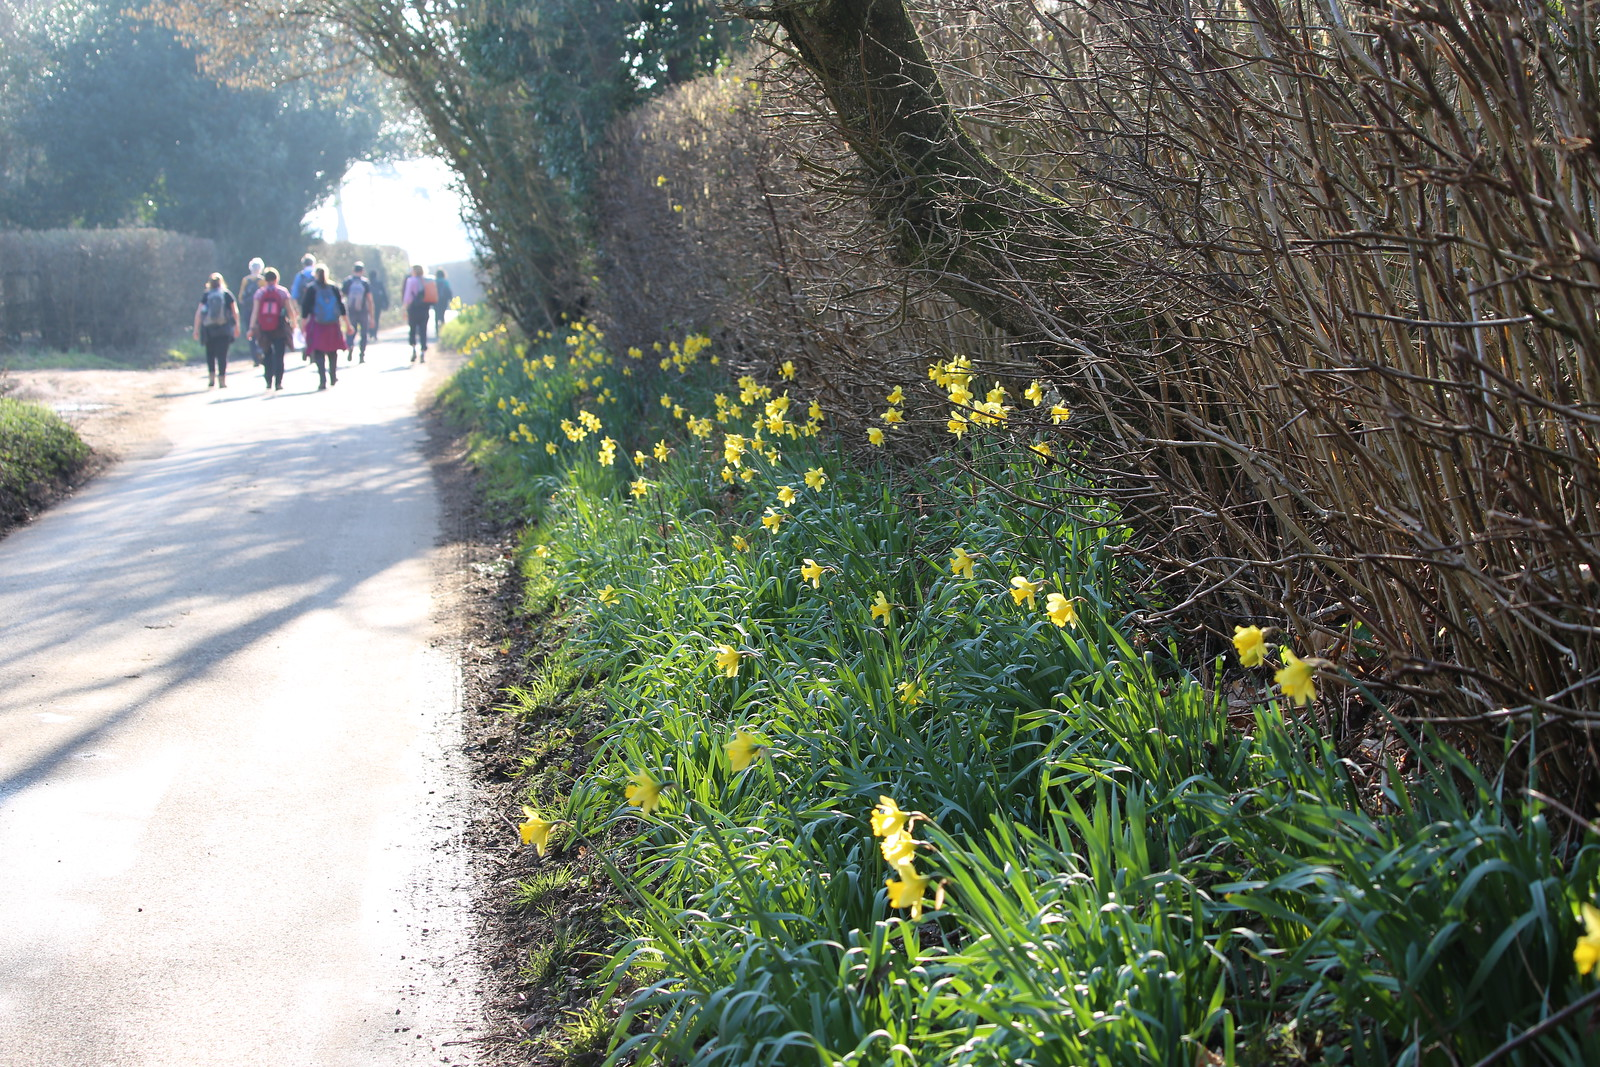 Walking past the daffs - Fawley